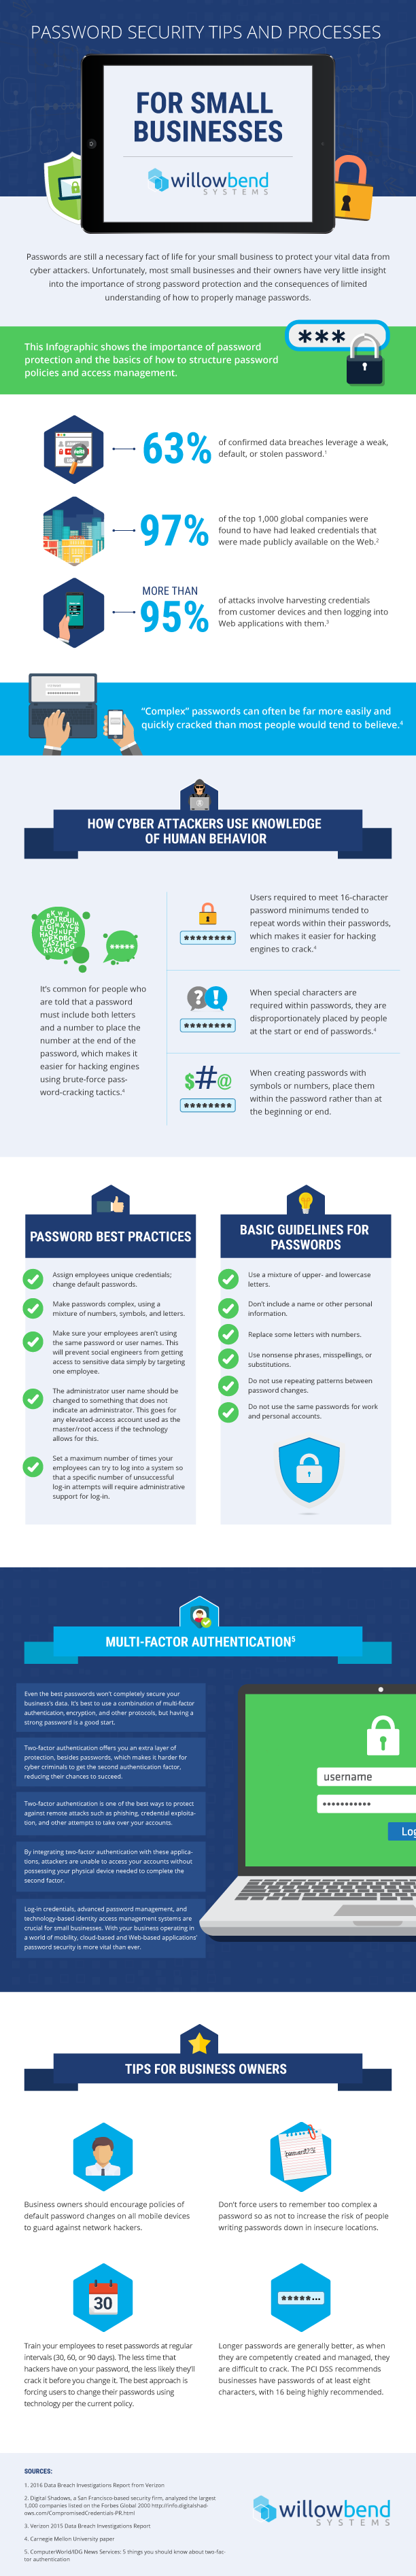 WB-Infogrpahic-Password-Security-Tips-and-Processes-for-Small-Businesses.png